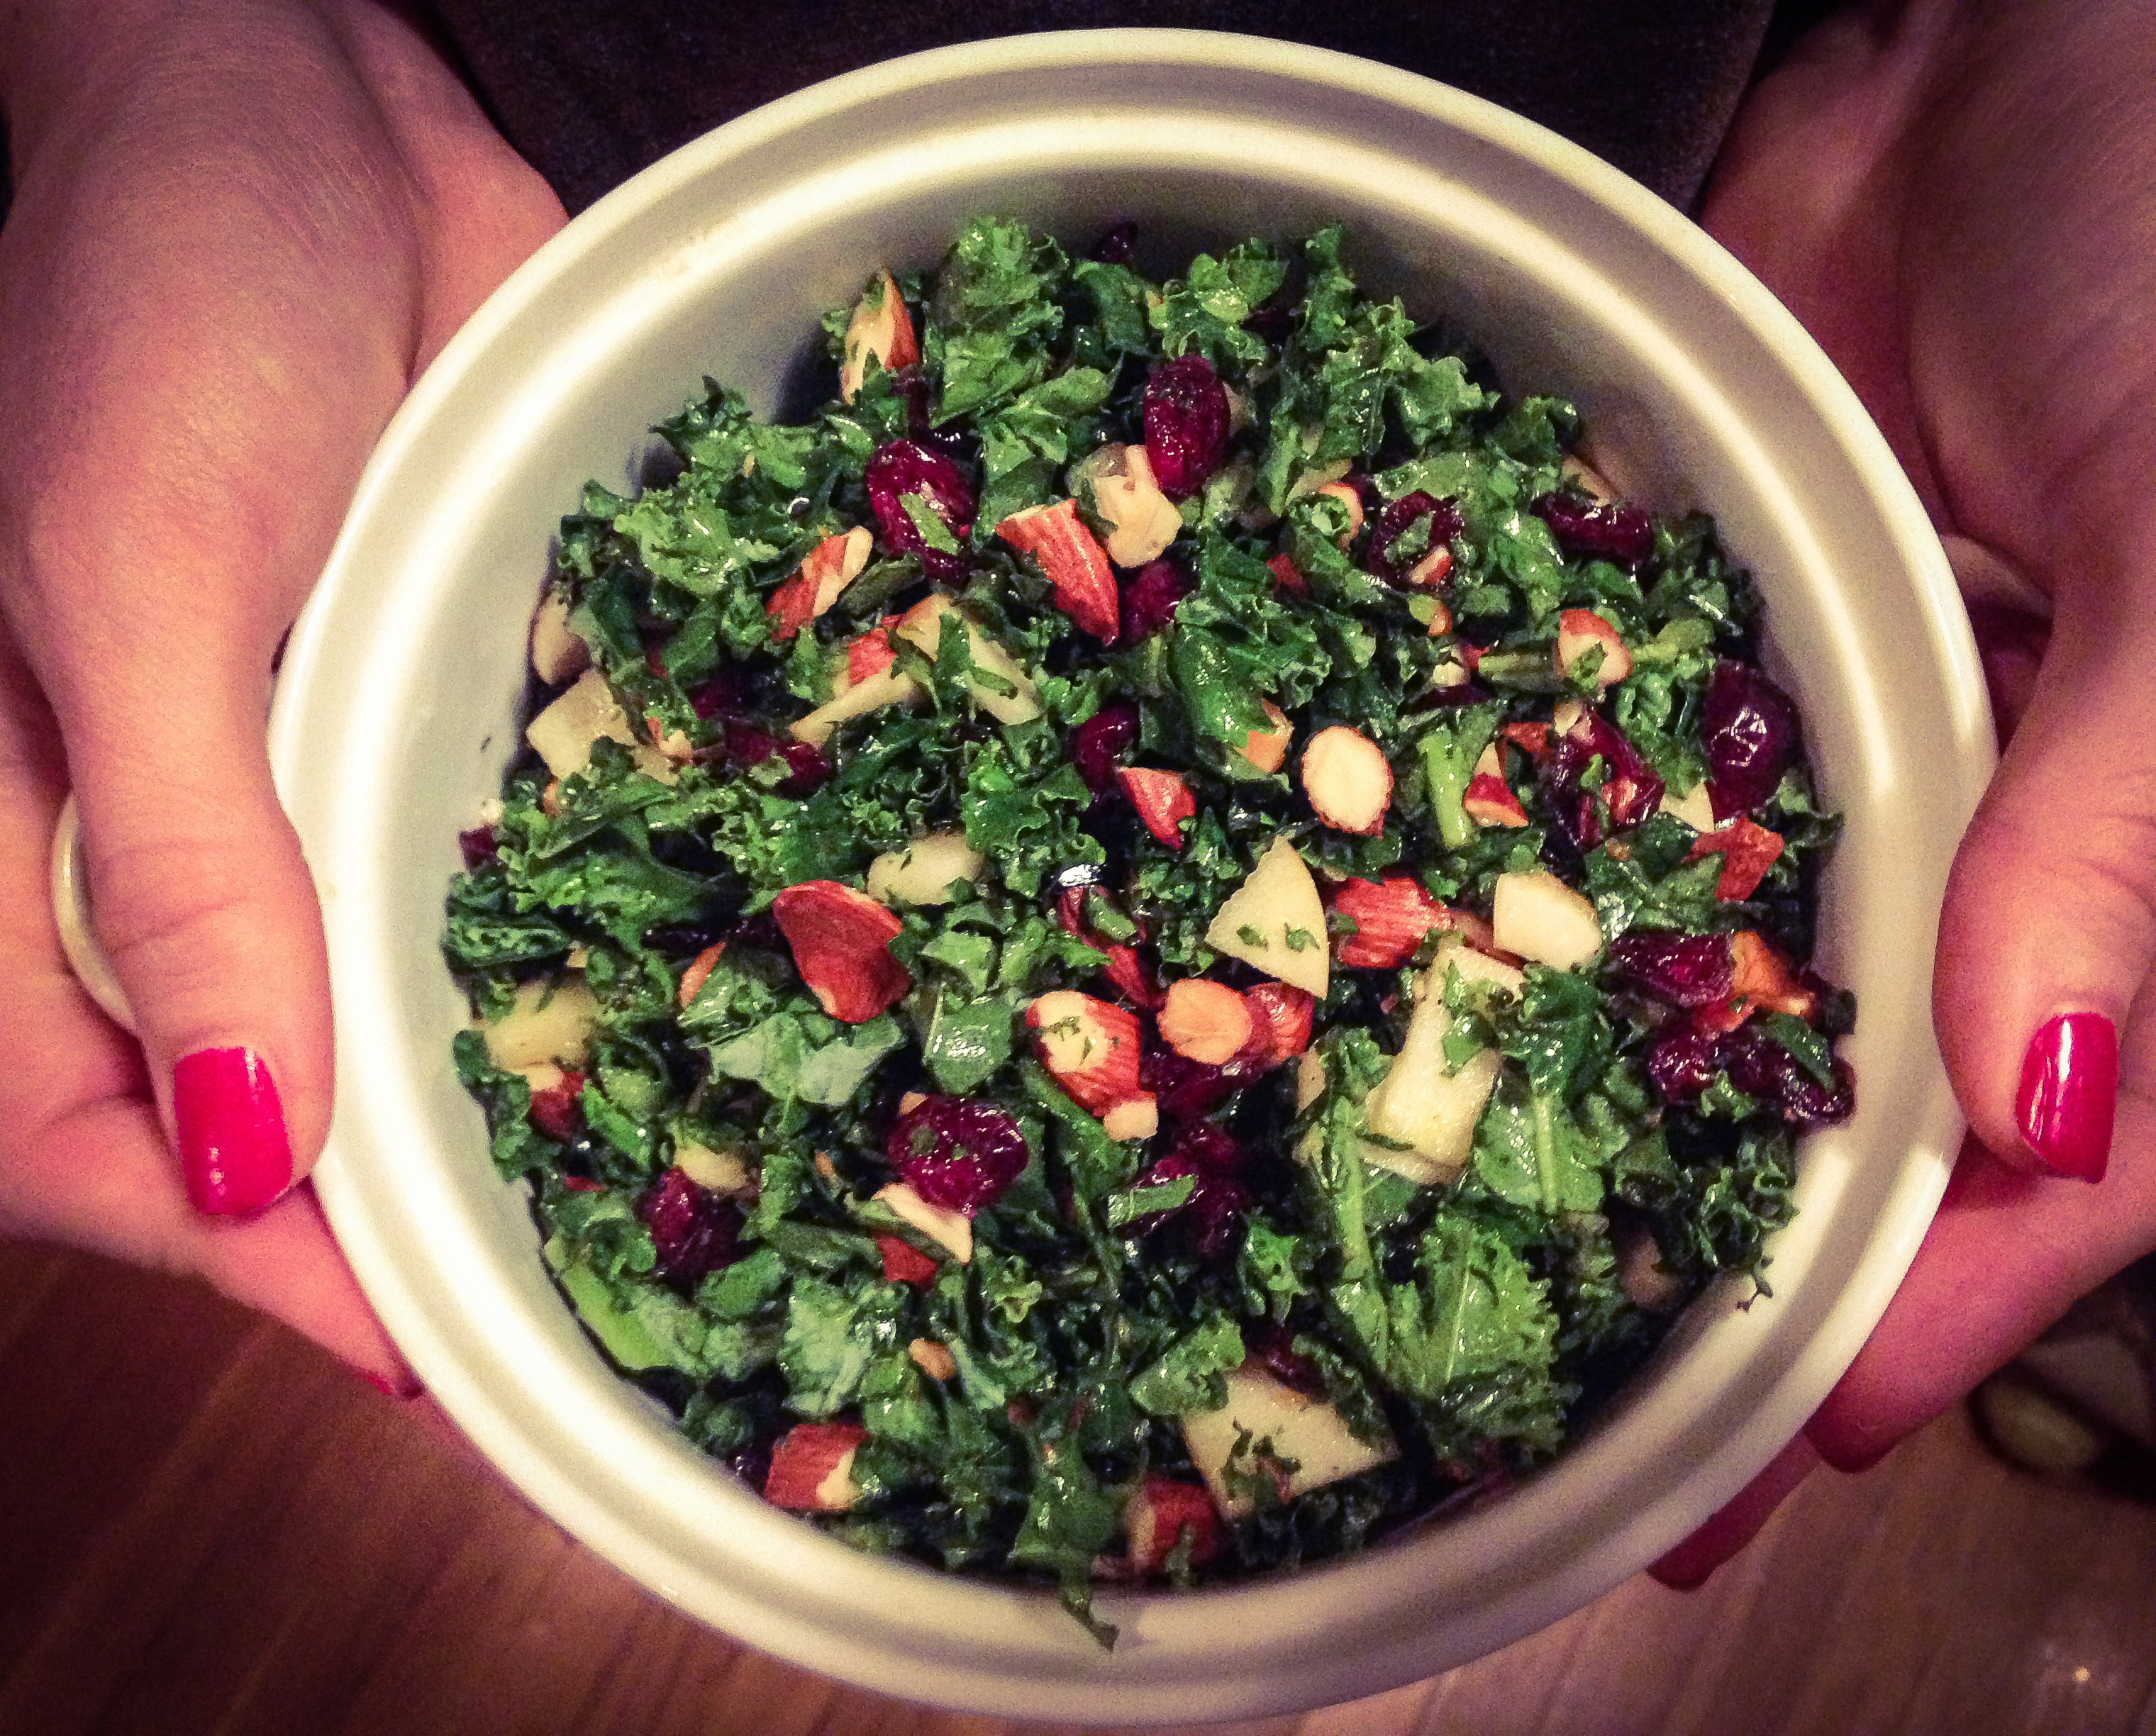 Summer Kale Recipes  Fruit and Nut Summer Kale Salad Recipe Feel good Eat clean